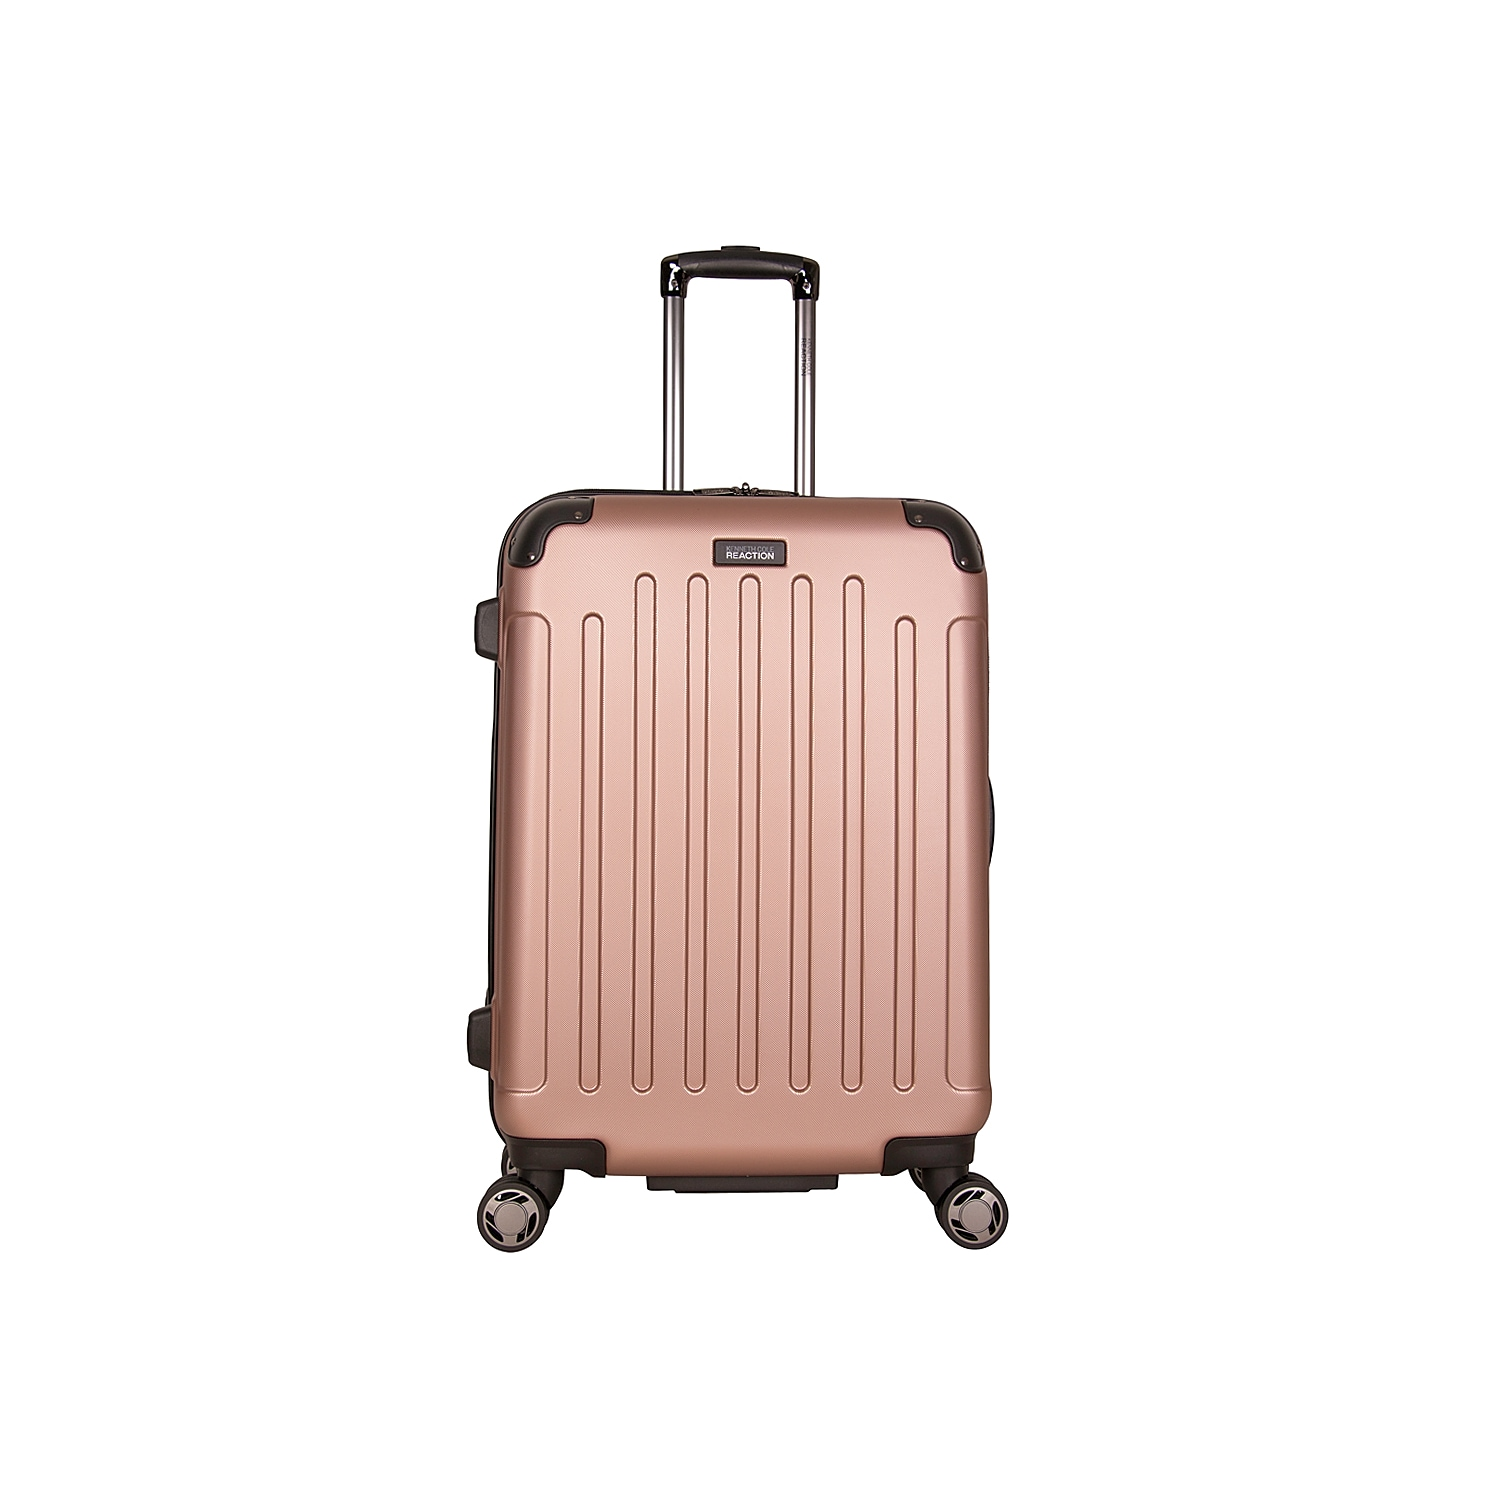 Fly through airport terminals with these free-weight rolling suitcases from Kenneth Cole Reaction. The Corner Guard expandable luggage is fitted with 8 multi-directional spinners, molded reinforcements on all four sides, and a durable hardcase exterior. Flexible top and side grab handles allow for easy lifting into airline overhead compartments.